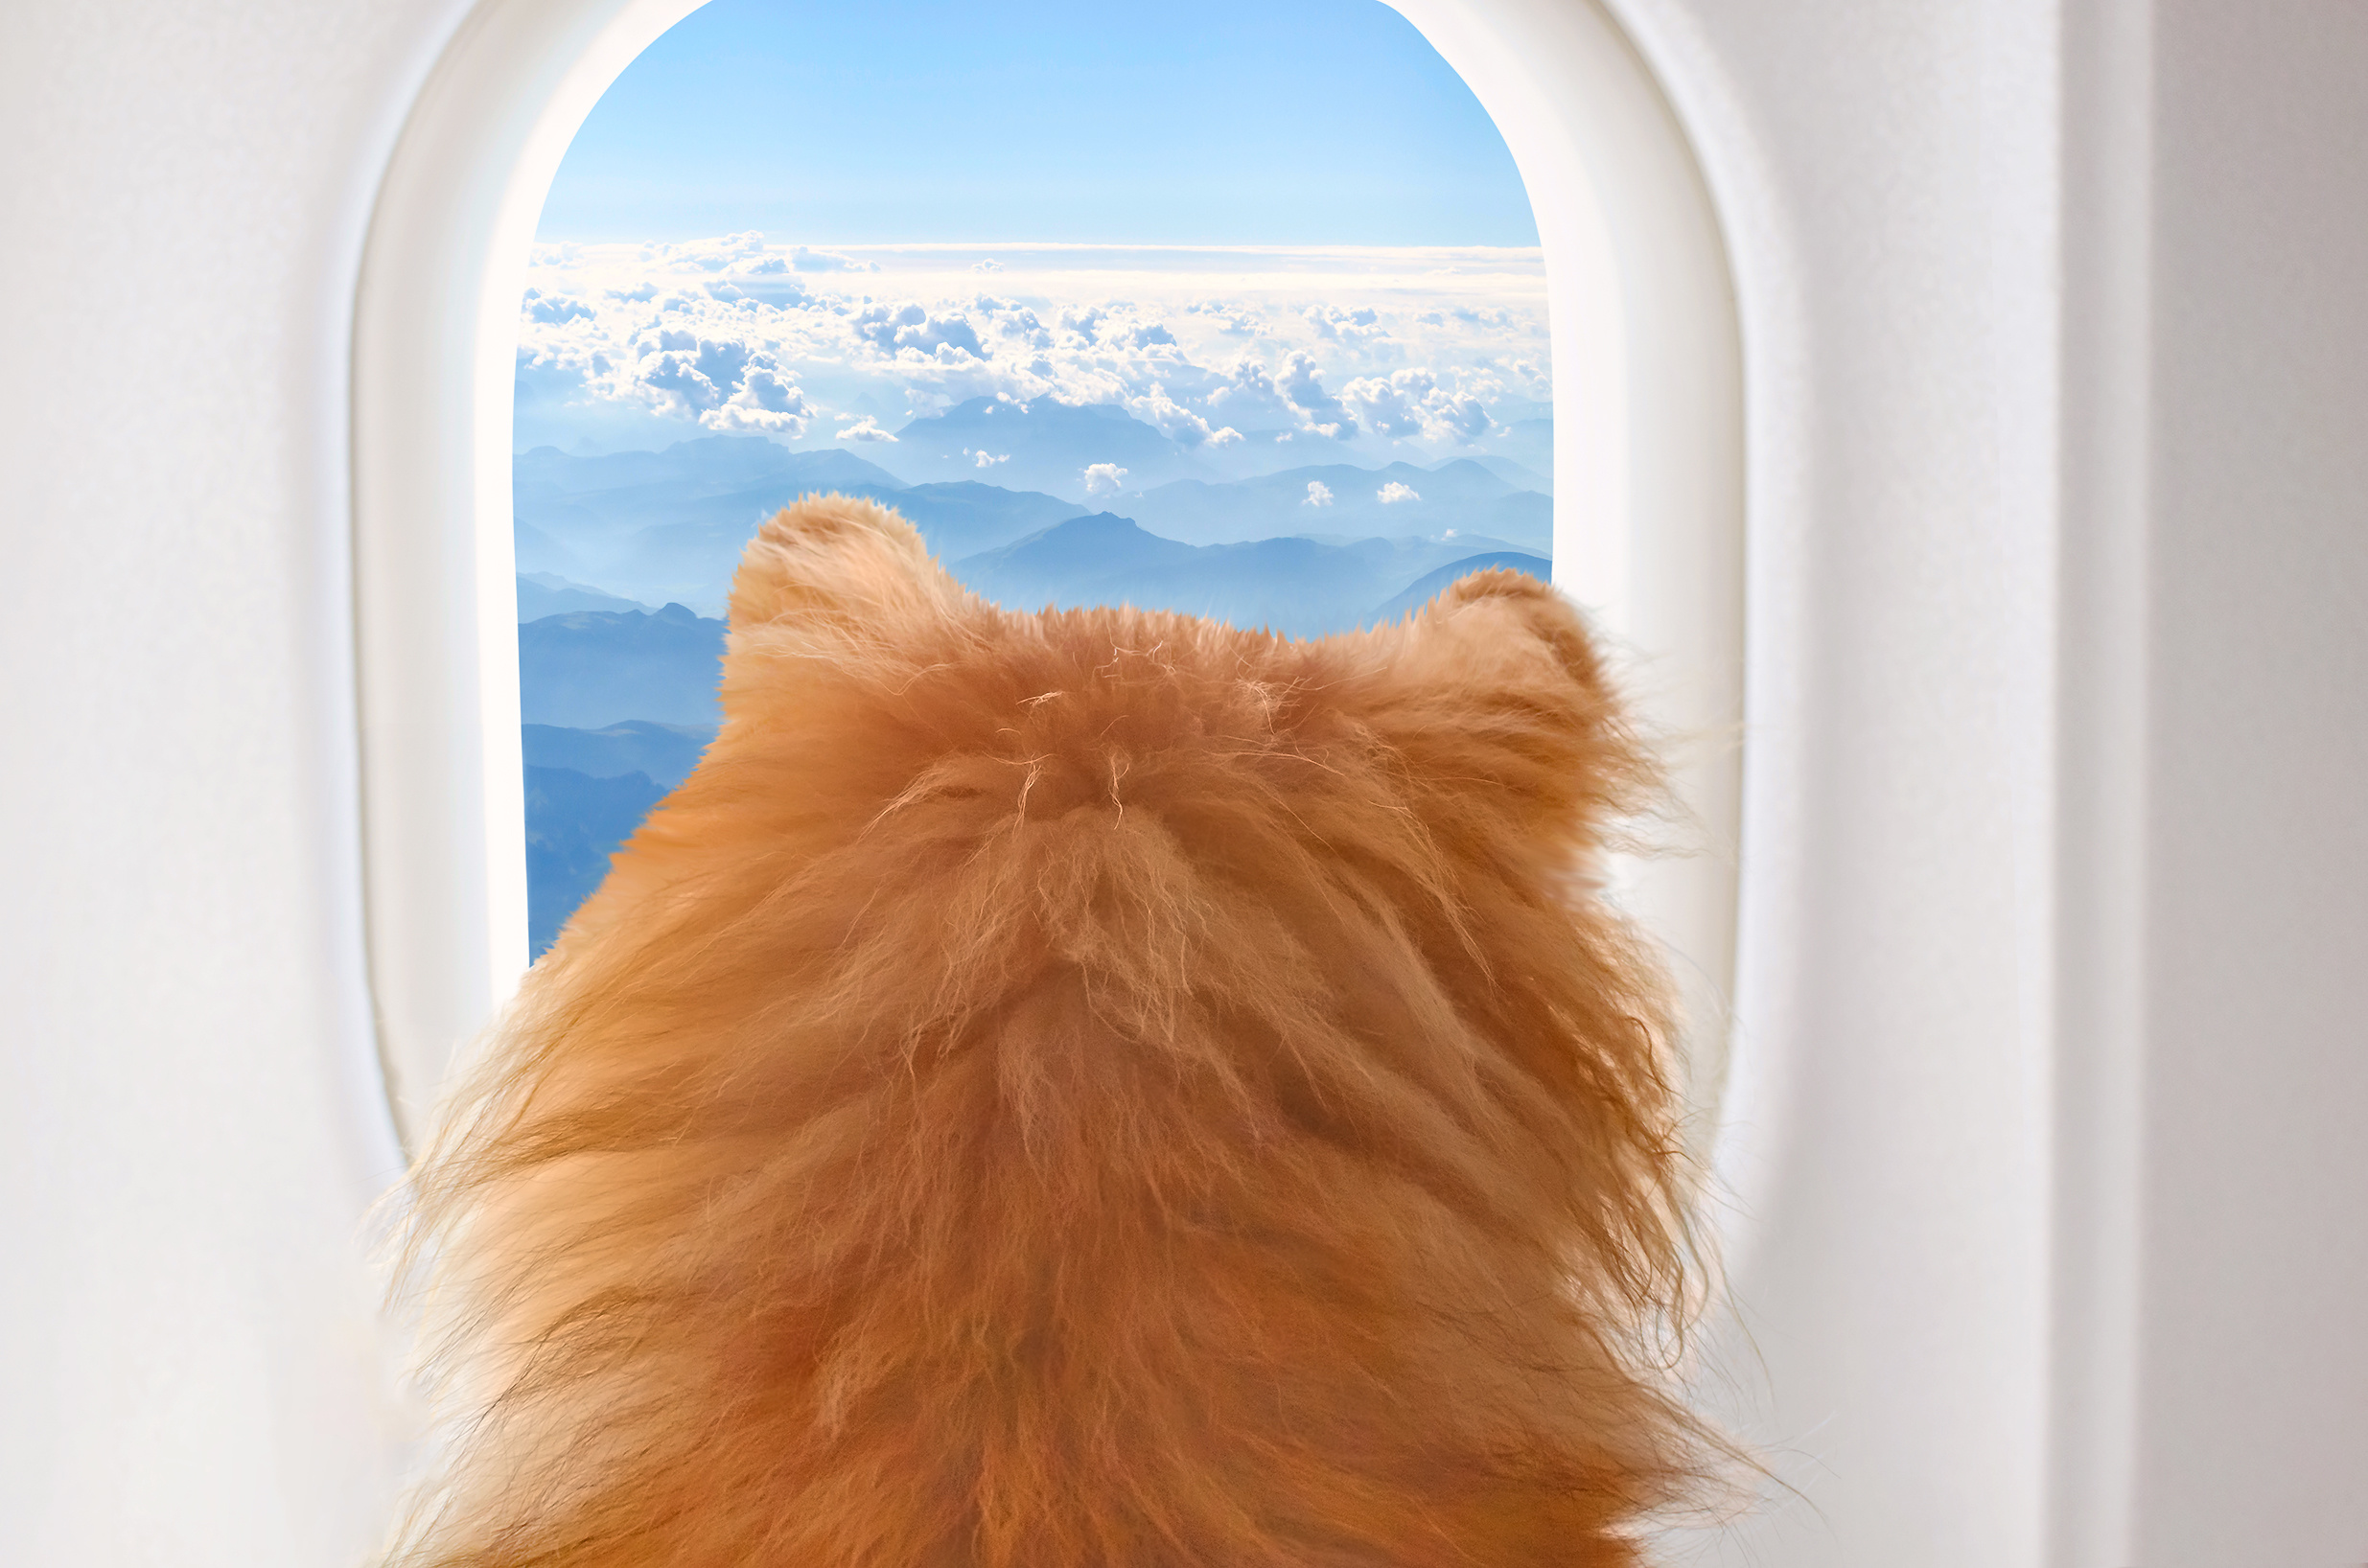 Transporting animals to shows by air - Private Jet Voyage